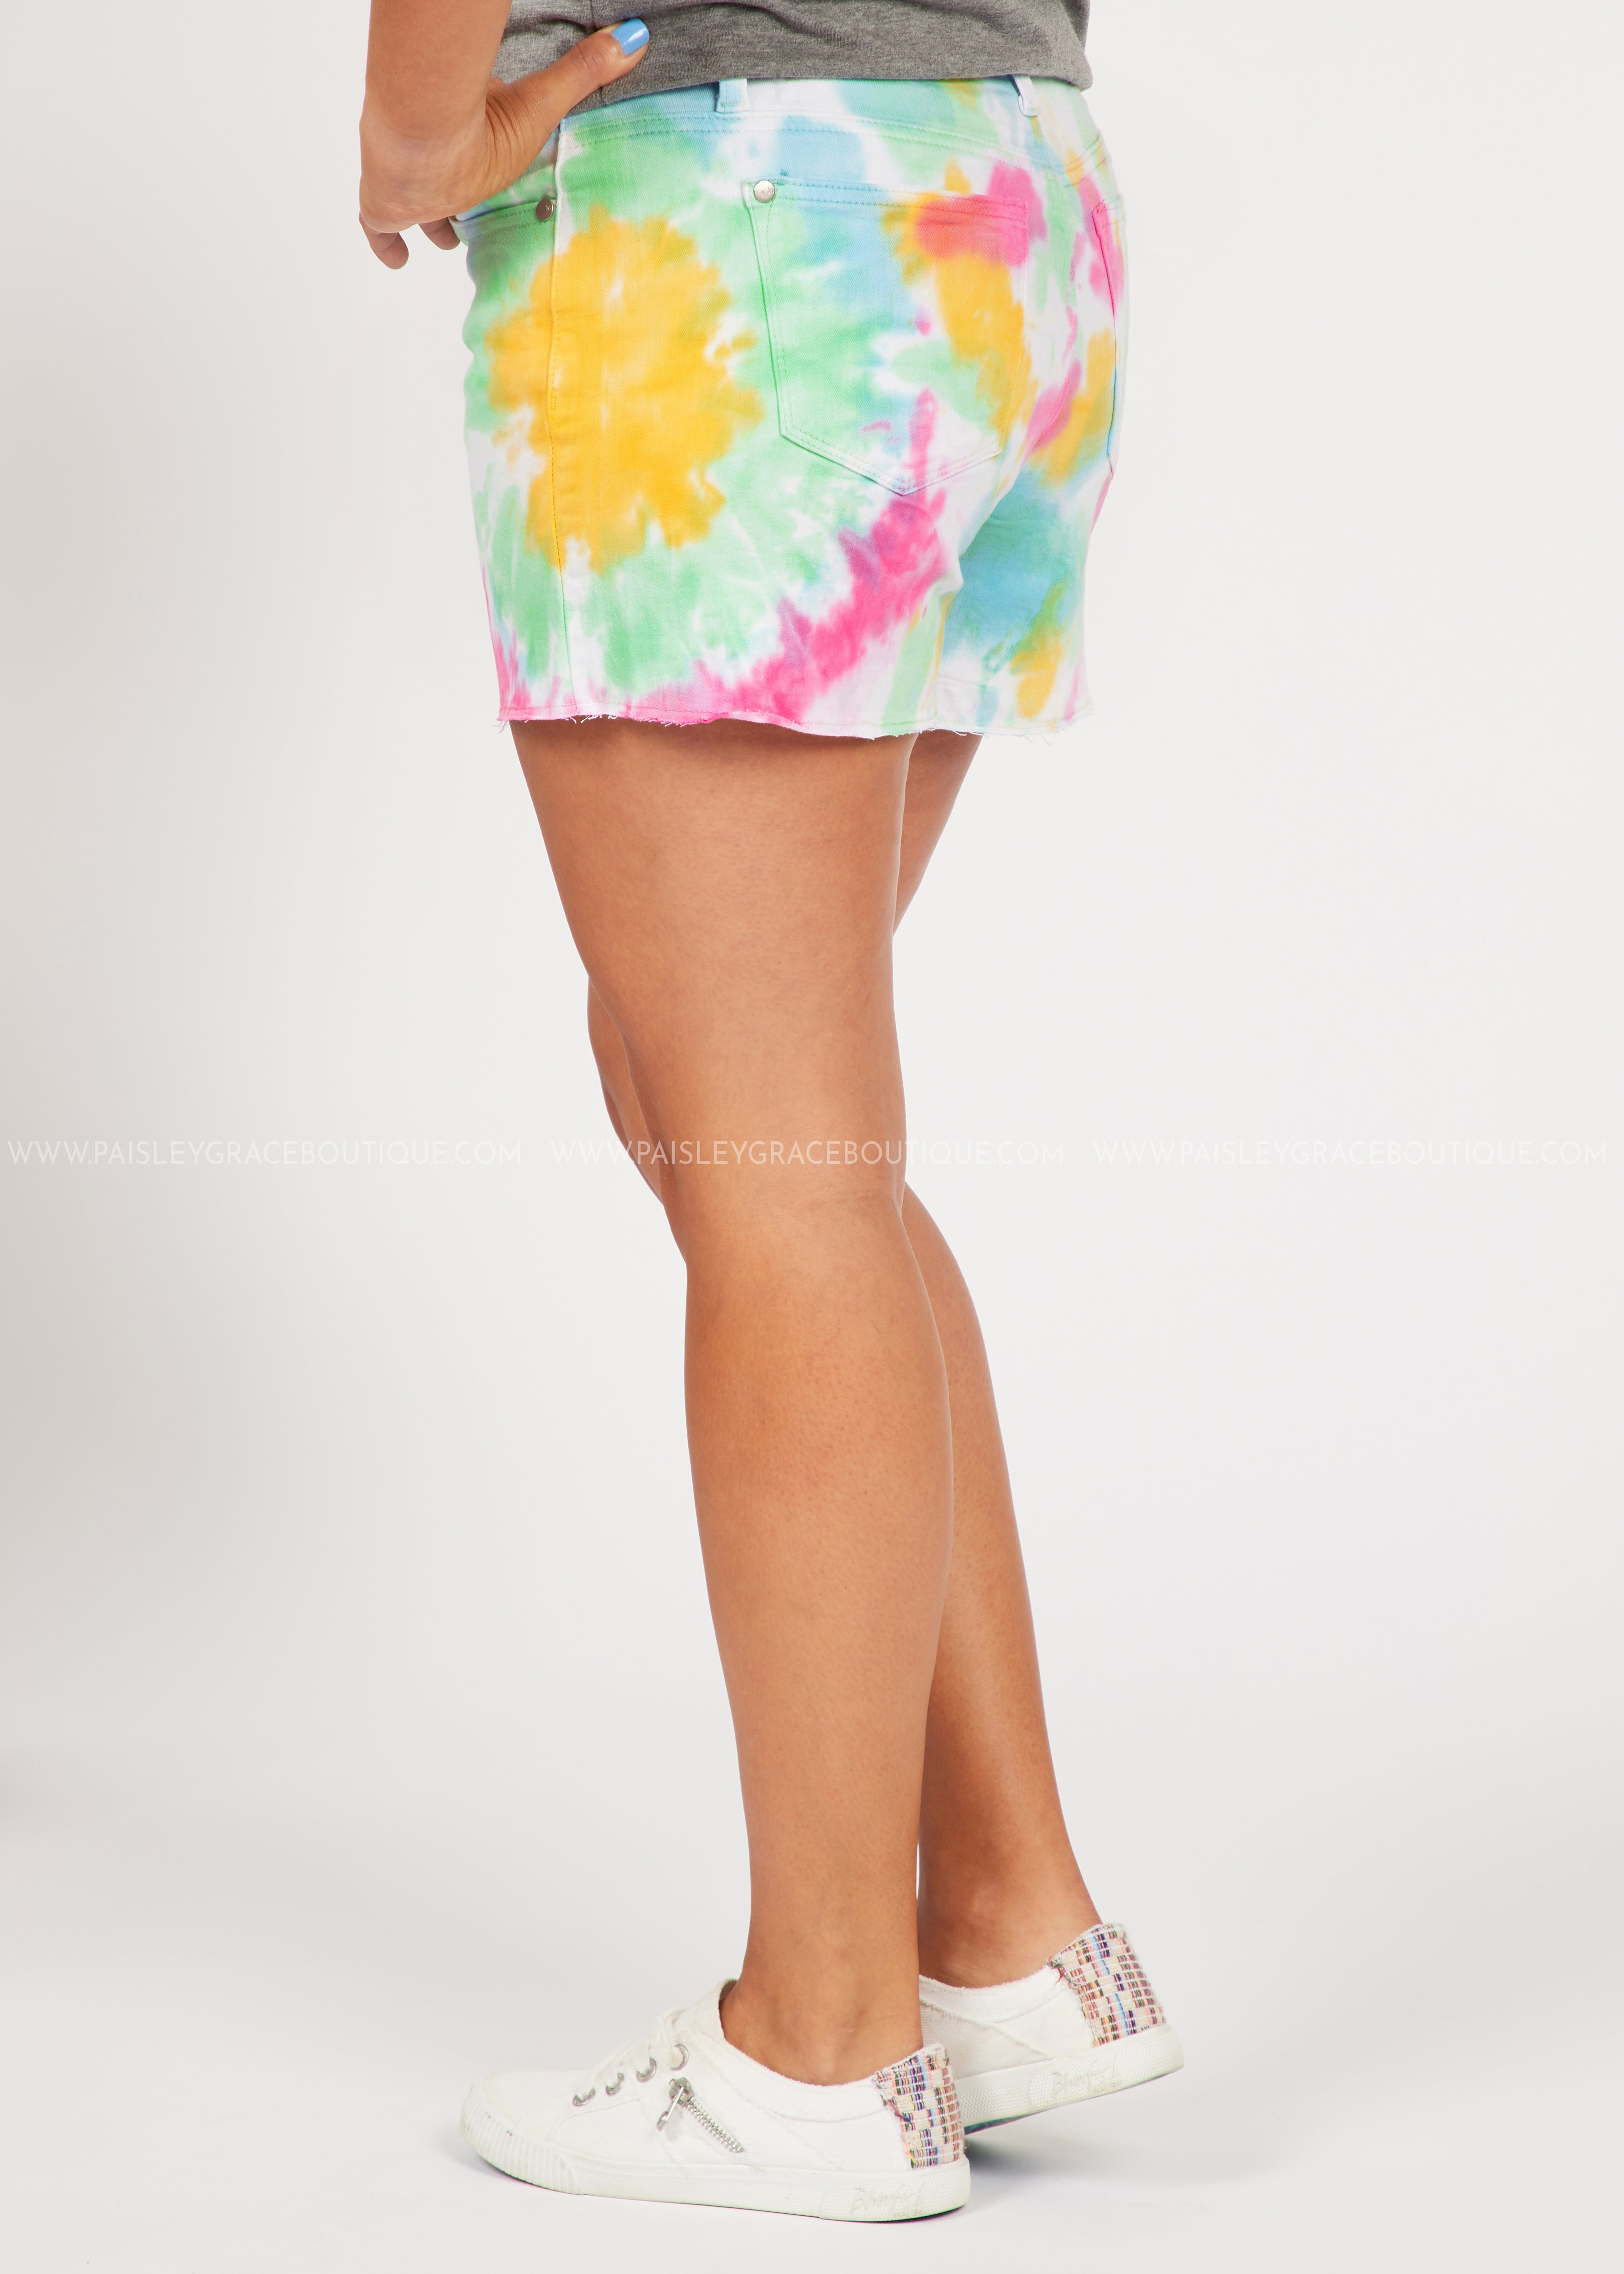 Rainbow Tie-Dye Shorts  - FINAL SALE